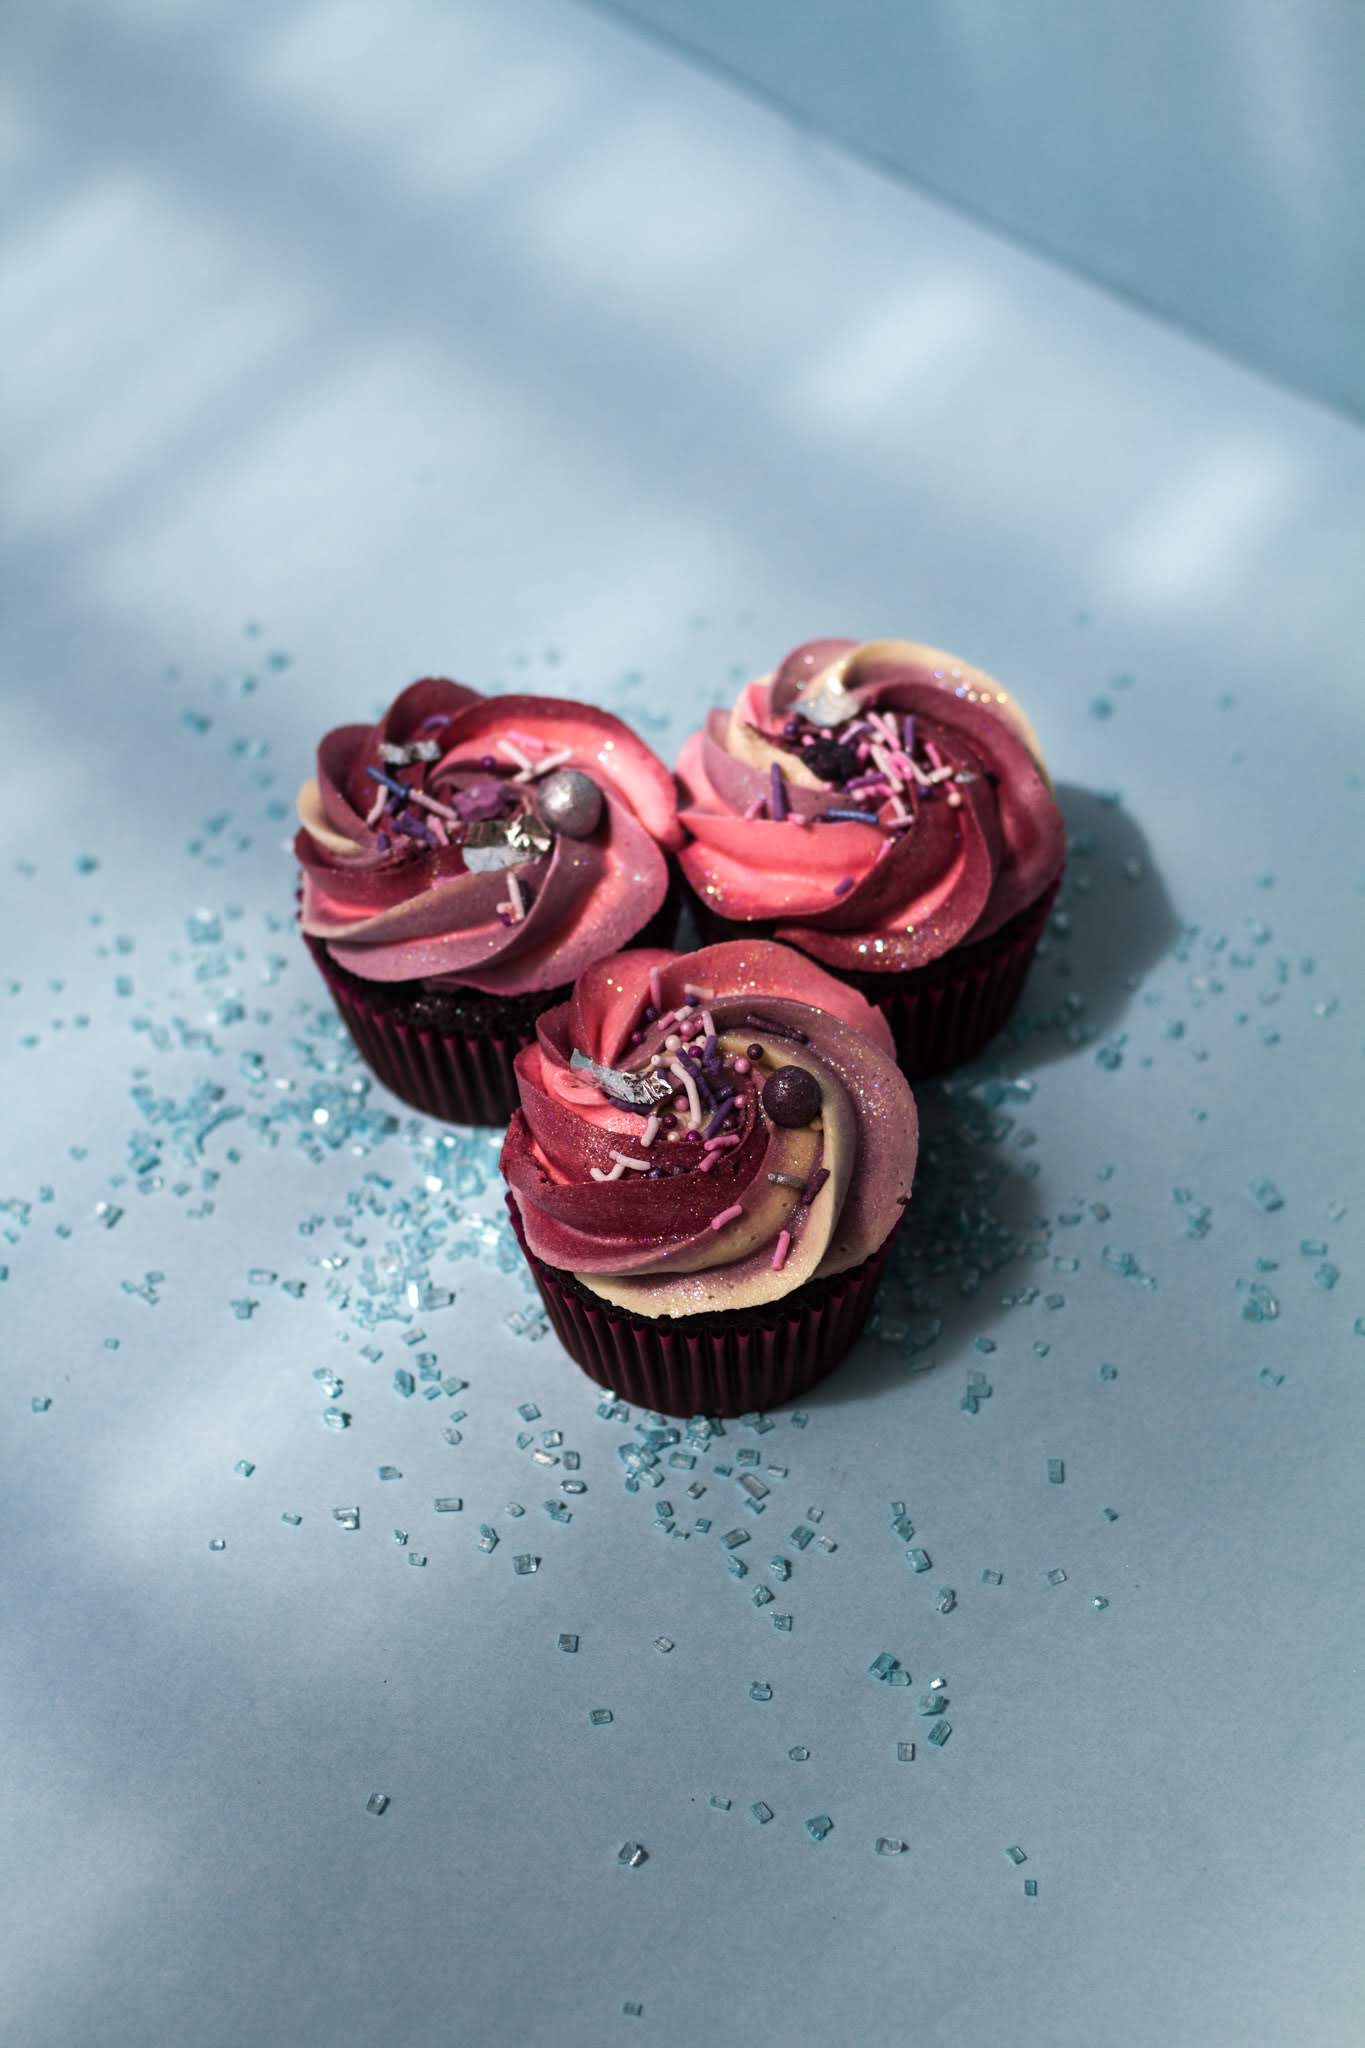 Red and purple icing on cupcake